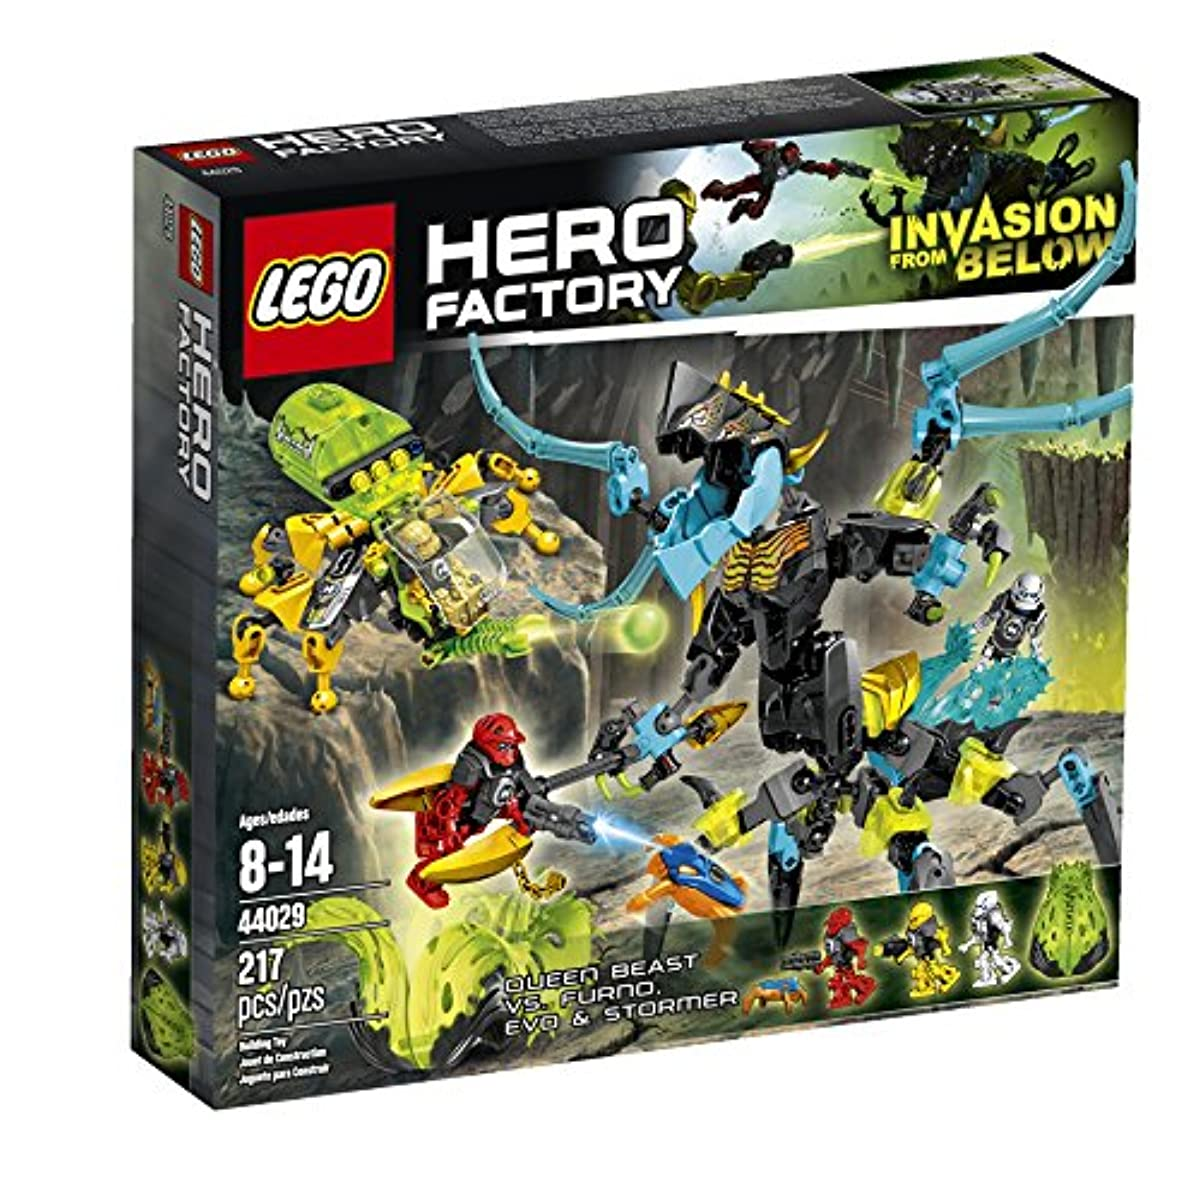 [해외] LEGO HERO FACTORY QUEEN BEAST VS. FURNO, EVO AND STORMER 44029 BUILDING SET-6059002